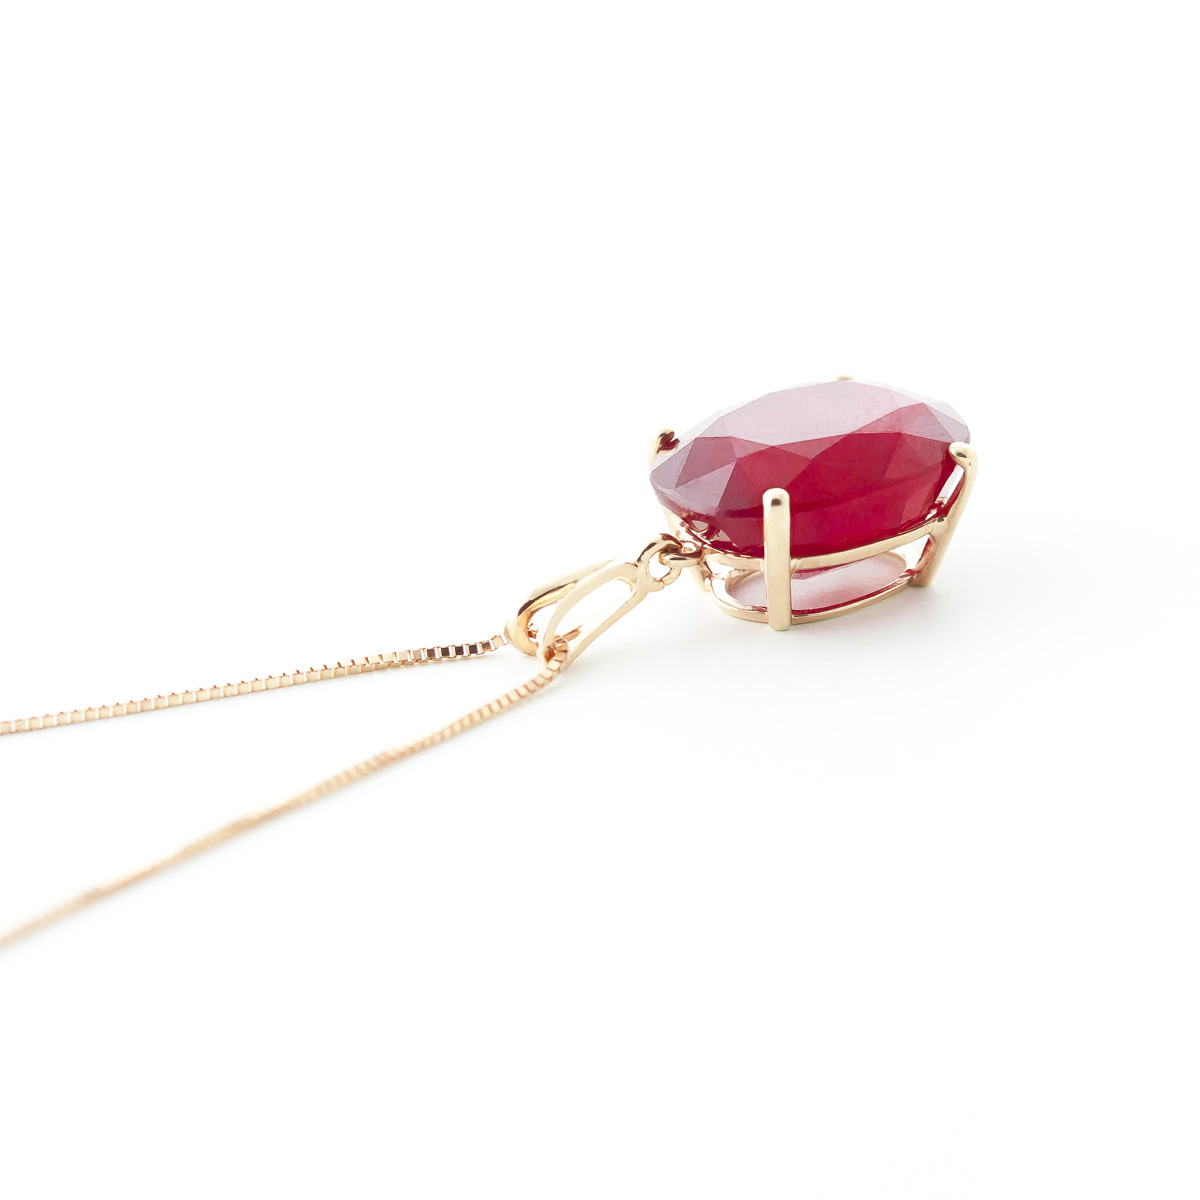 Oval Cut Ruby Pendant Necklace 7.7ct in 9ct Gold